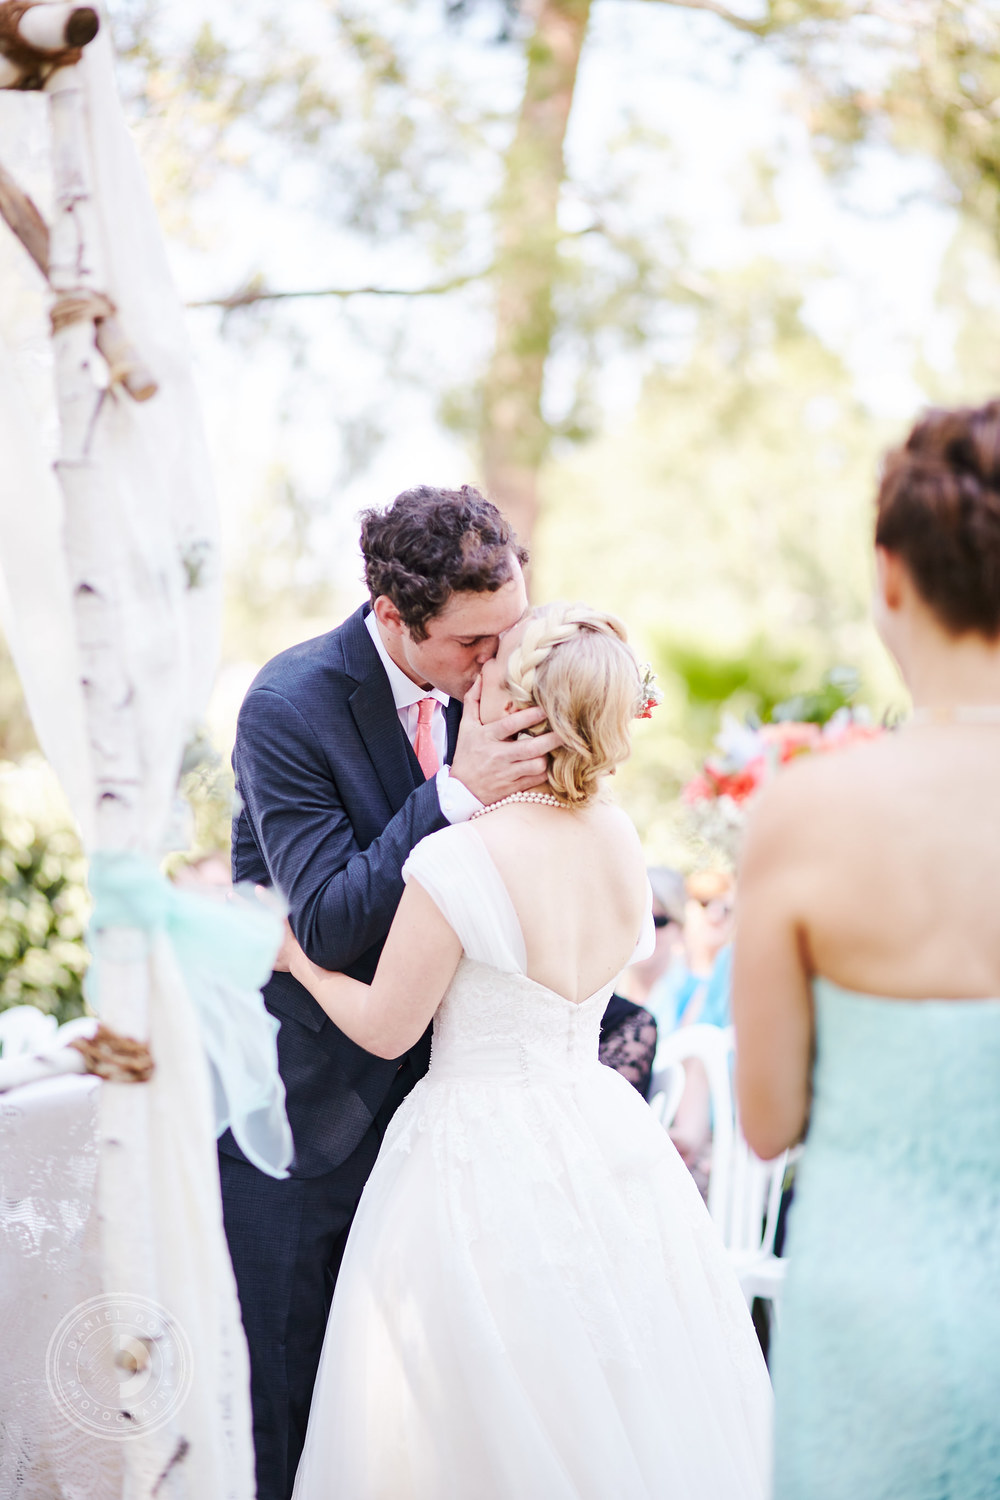 Daniel Doty Photography Erin Colin SoCal Wedding Photographer Strathearn 145.jpg